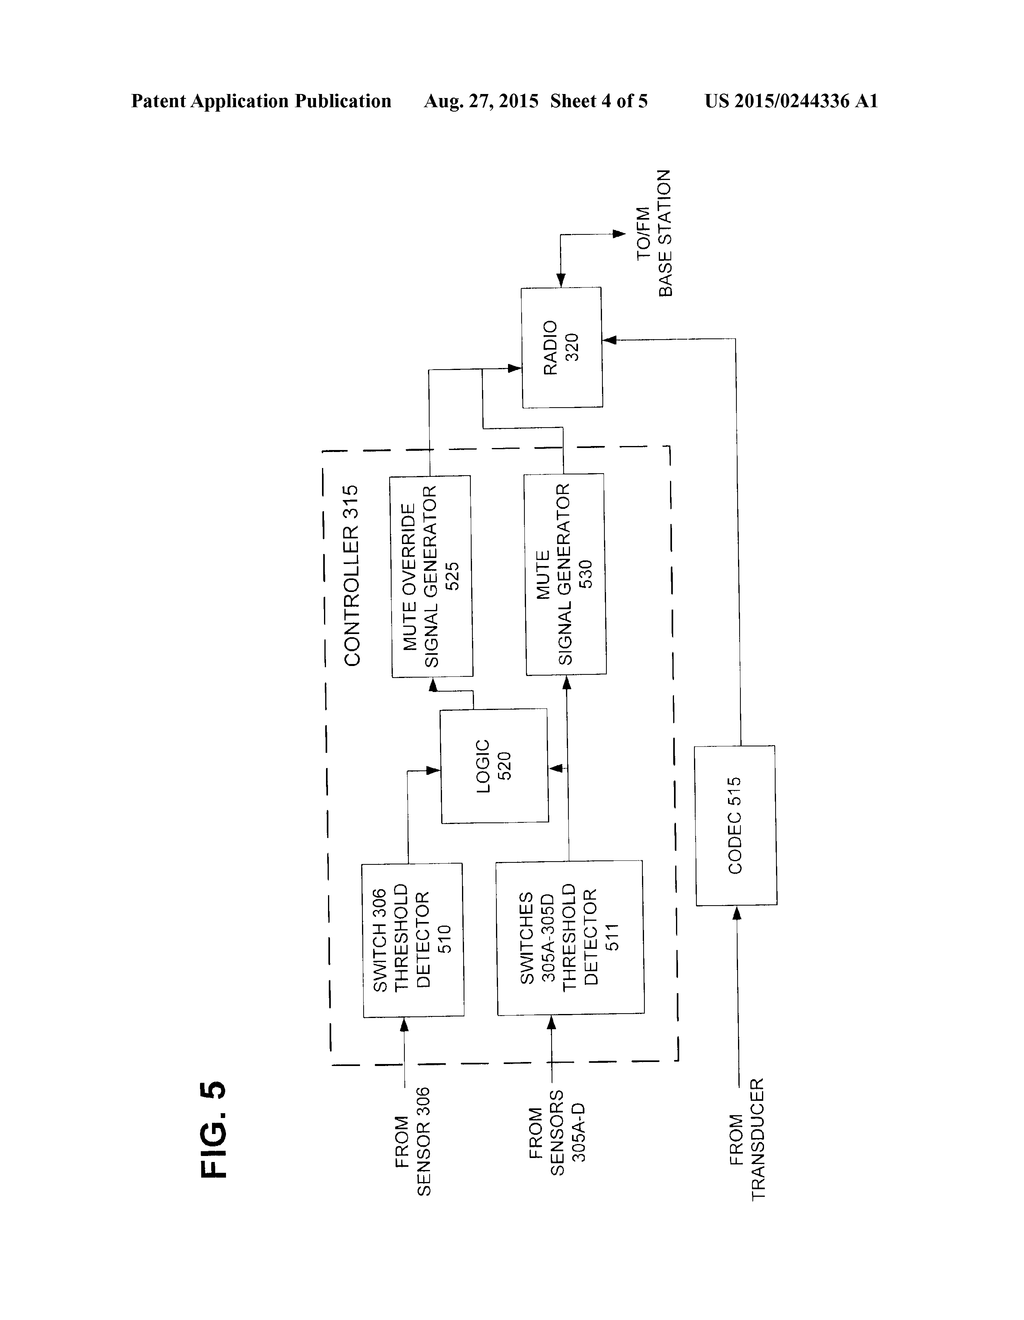 Wireless Microphone Diagram Wiring Library Classroom System Circuit Mute Control Override Schematic And Image 05